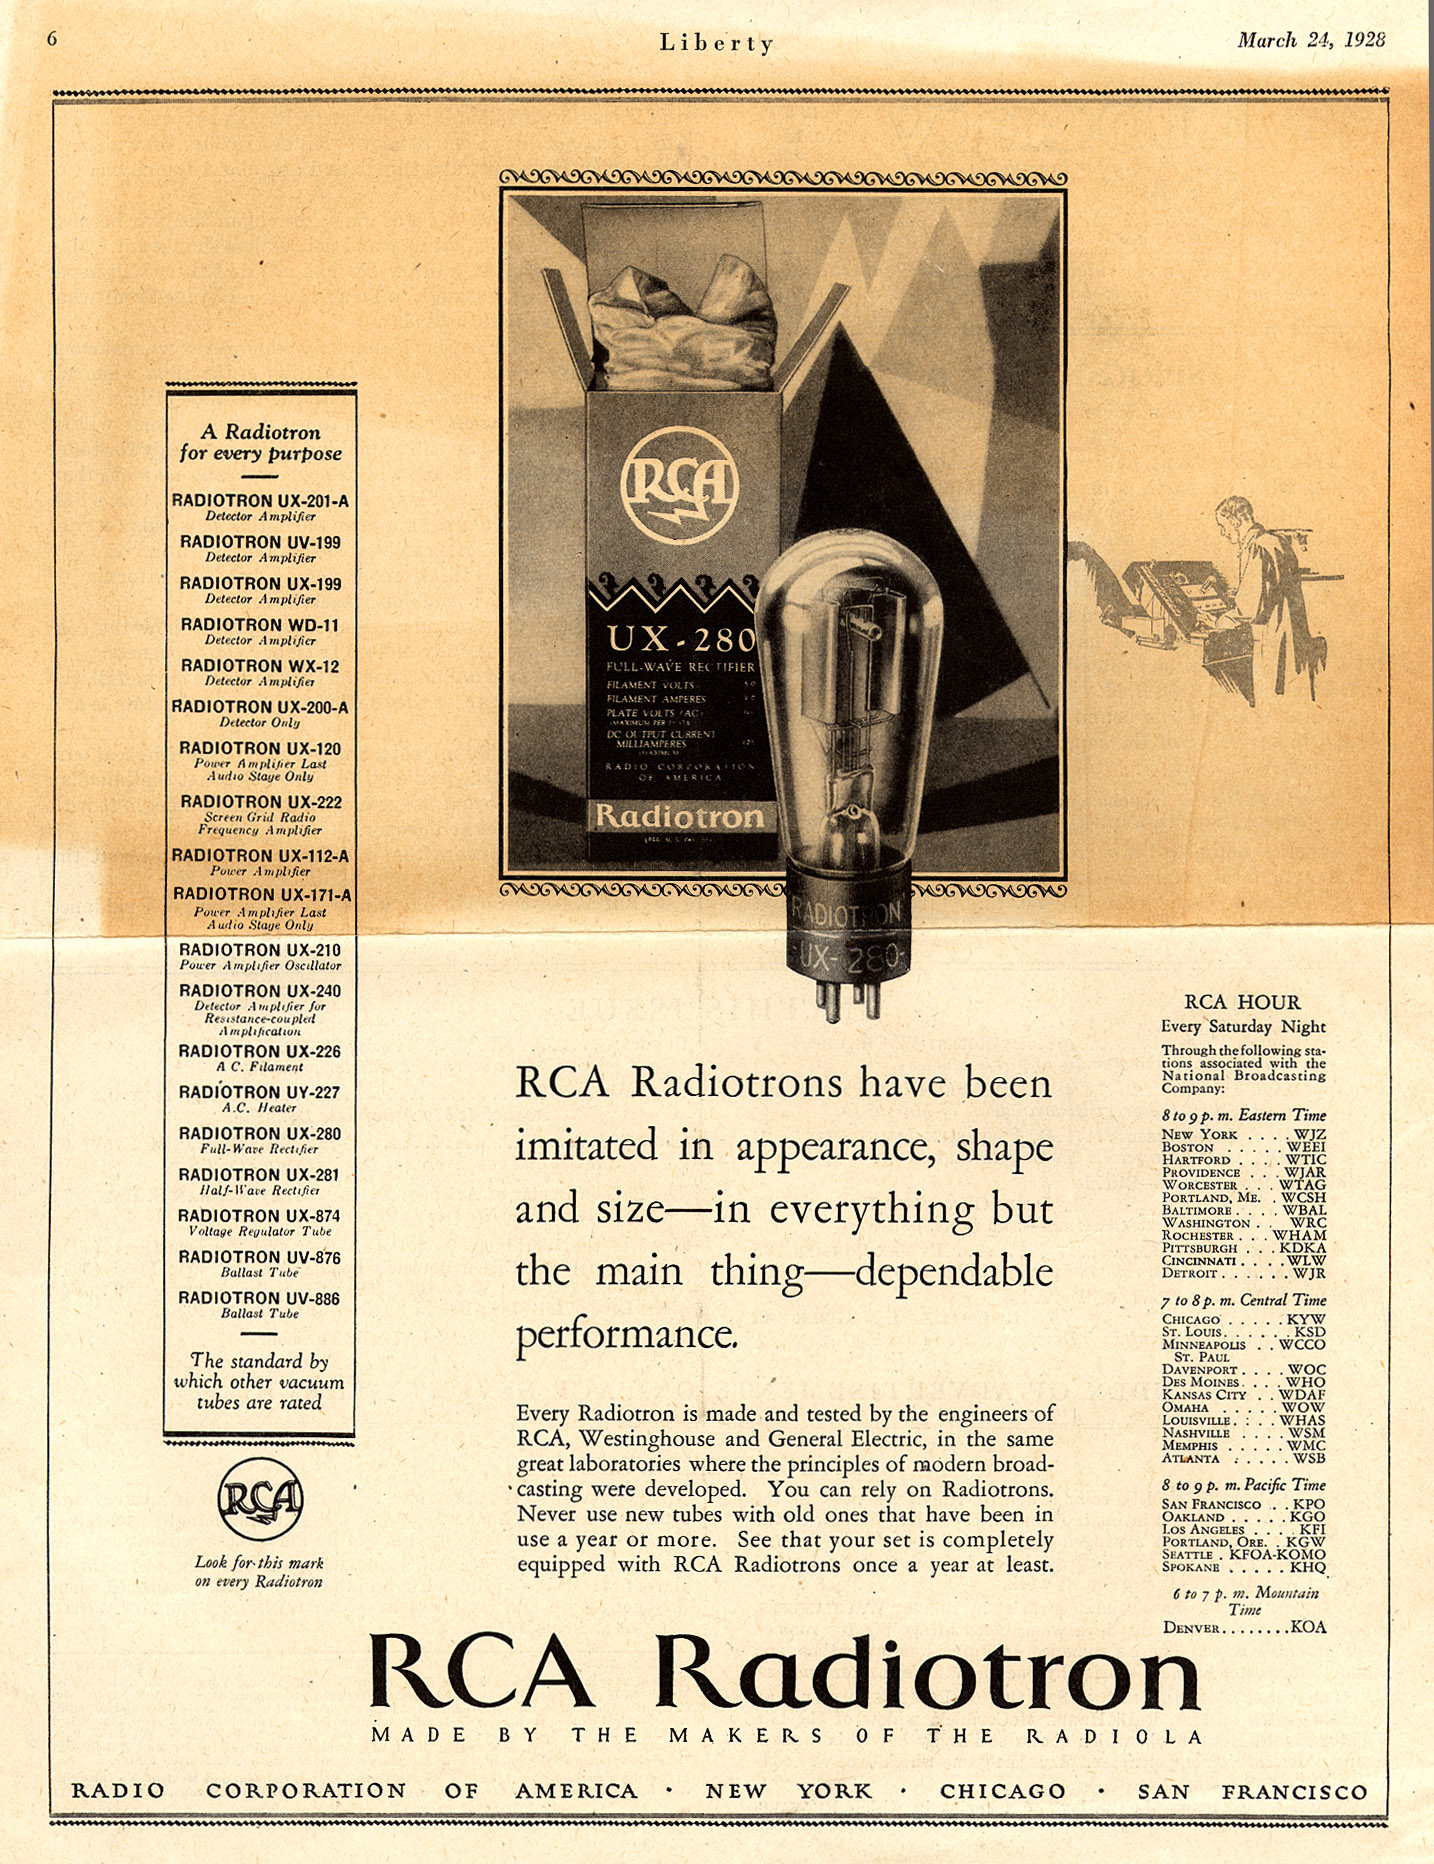 RCA_Radiotrons_have_been_imitated_in_appearance_shape_and_size--